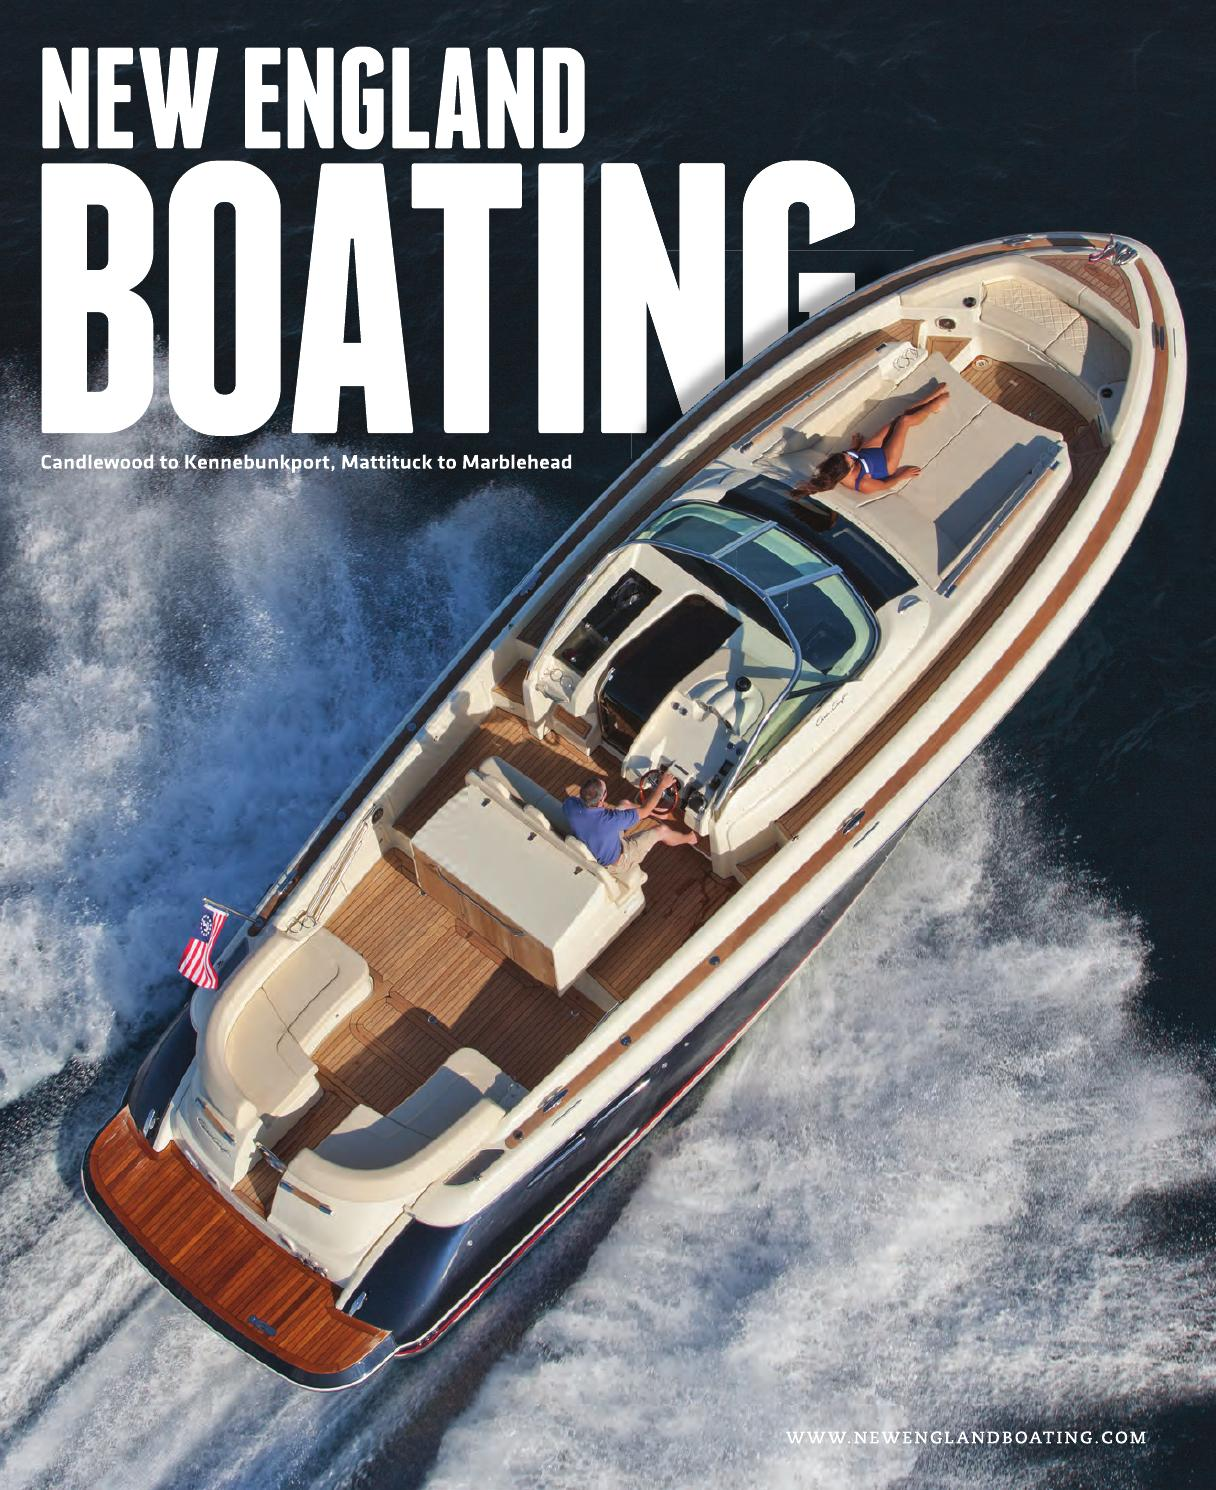 New England Boating Spring Summer 2015 By Lighthouse Media Cobia 17 Boat Wire Diagram Solutions Issuu